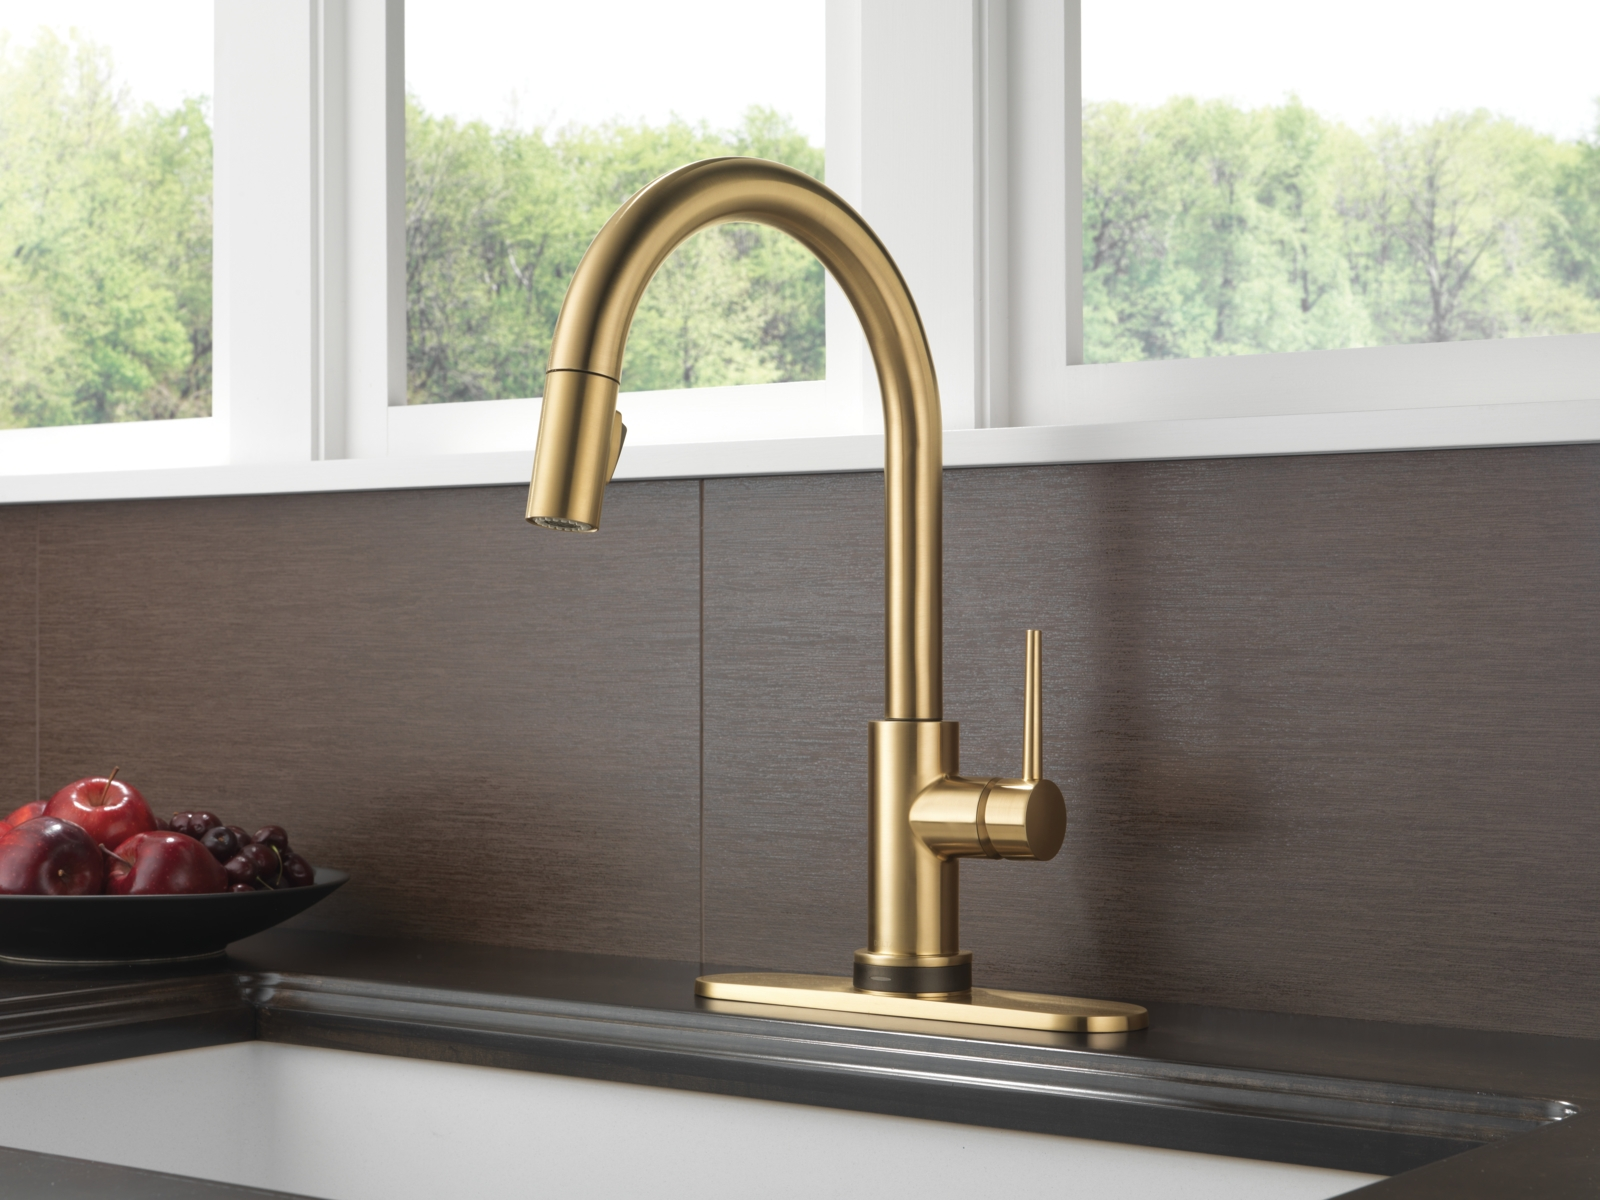 Ideas, trinsic kitchen collection kitchen faucets pot fillers and intended for measurements 1600 x 1200  .